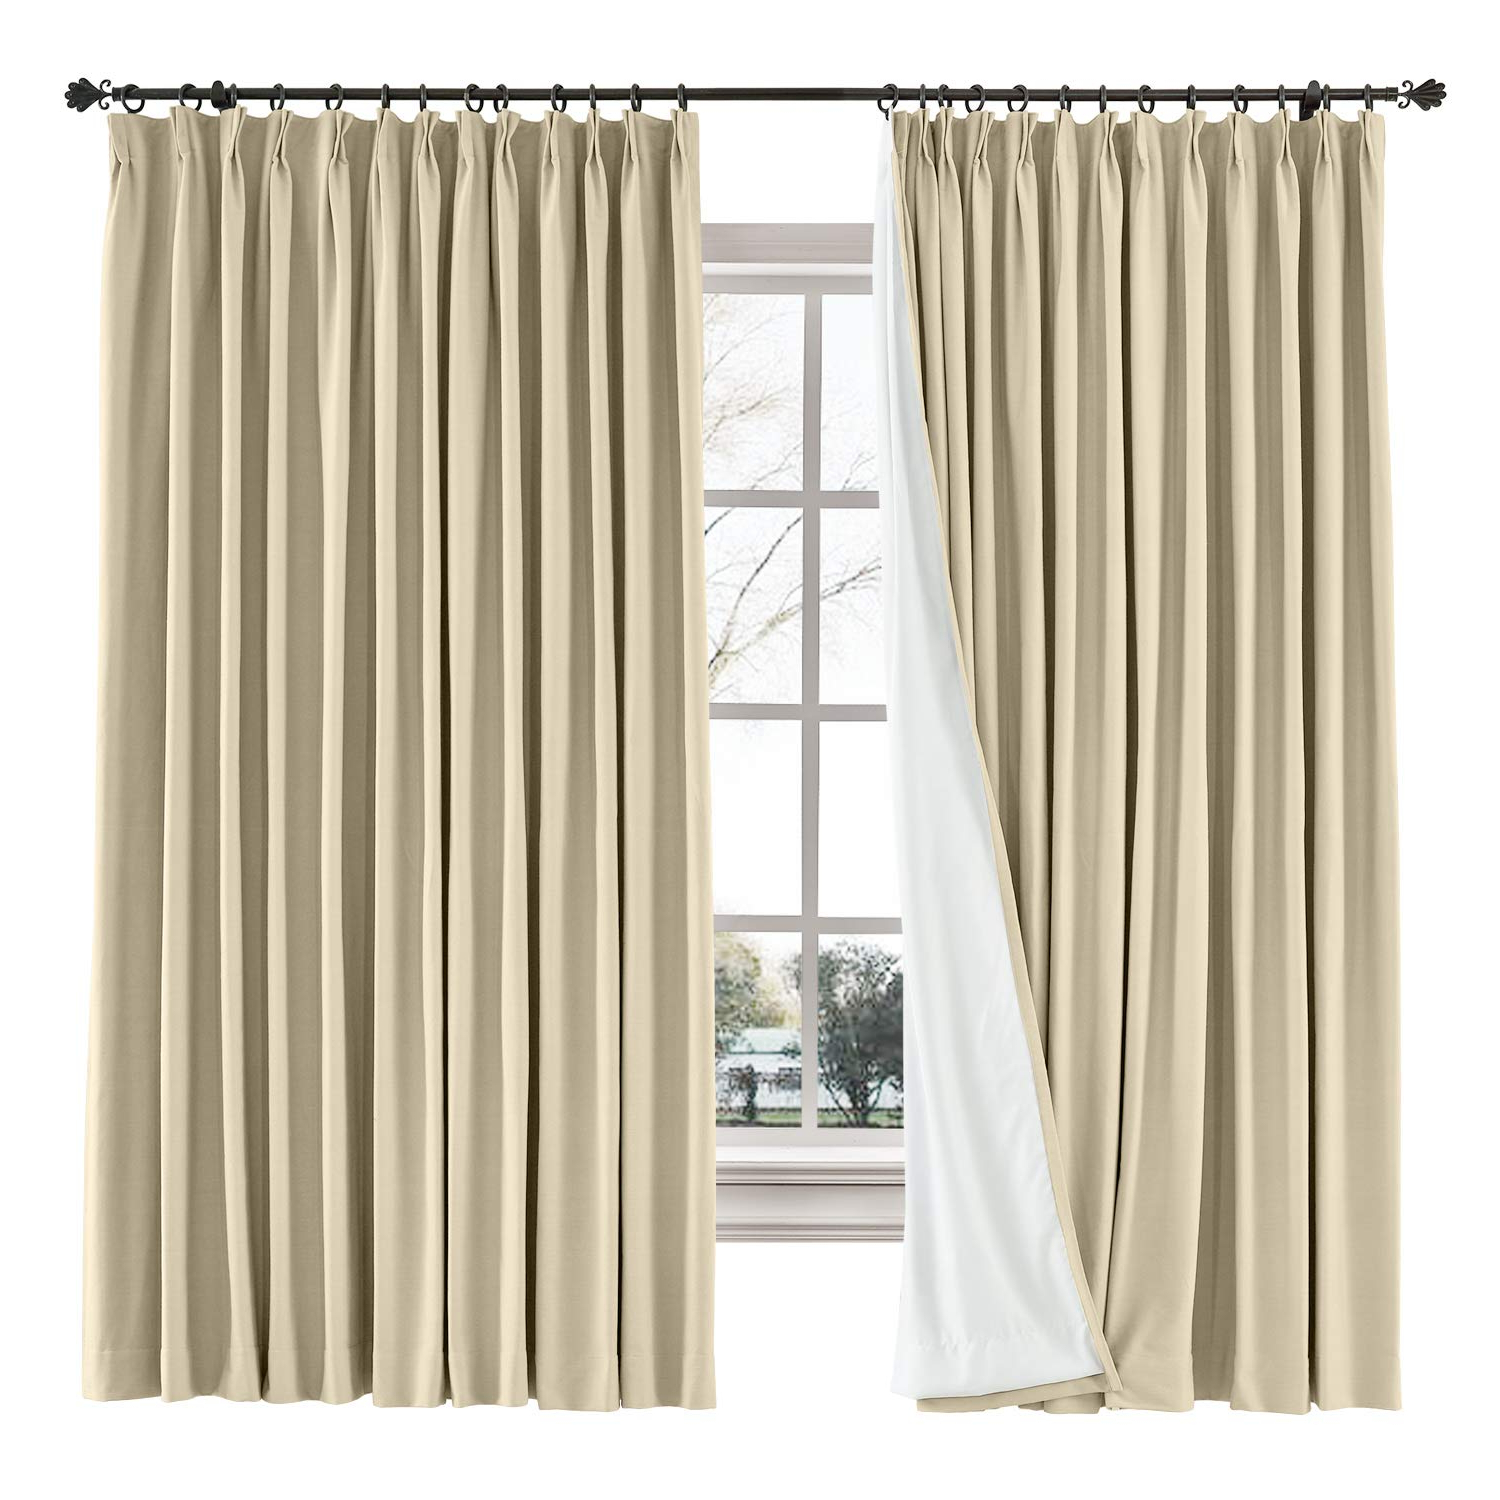 """Solid Cotton Pleated Curtains Throughout Favorite Chadmade 60"""" W X 84"""" L Solid Cotton Linen Curtain Panel Pinch Pleated Drape Light Block Curtain Kid Room Drape Bedroom Living Room Sliding Door Panel, (View 2 of 20)"""